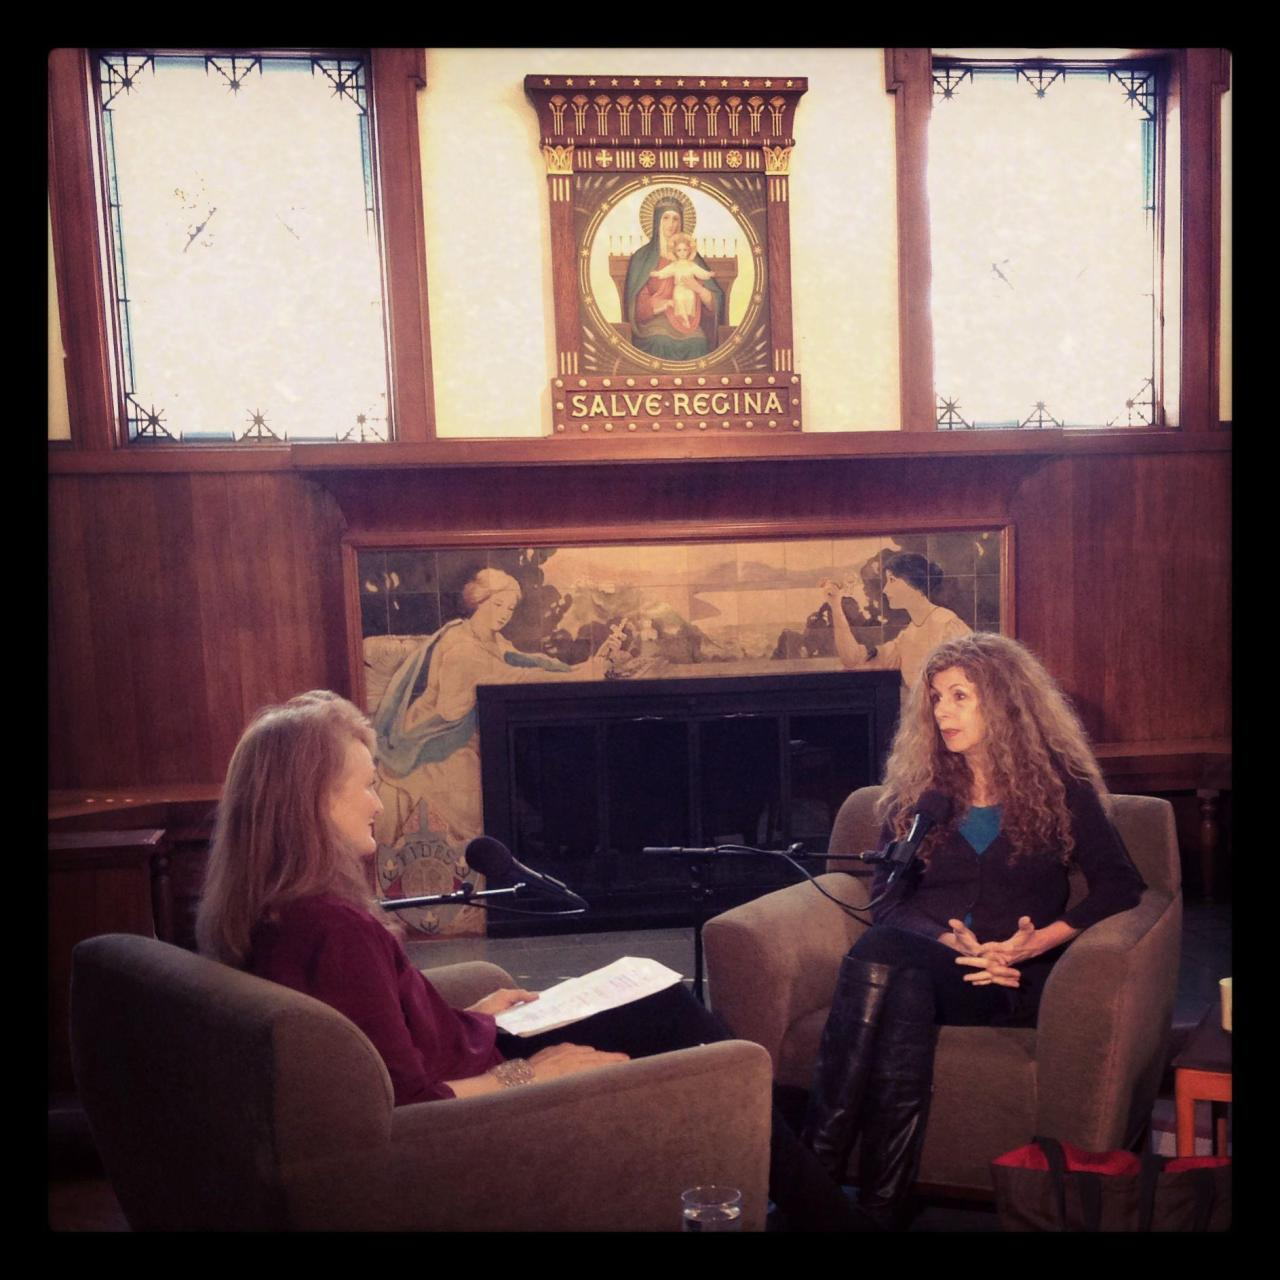 On Saturday, Krista Tippett interviewed New York poet laureate Marie Howe in the beautiful old library at the College of Saint Benedict under the watchful eyes of the Virgin Mary (Salve Regina). Can't wait to produce this show for On Being. Photo by Trent Gilliss